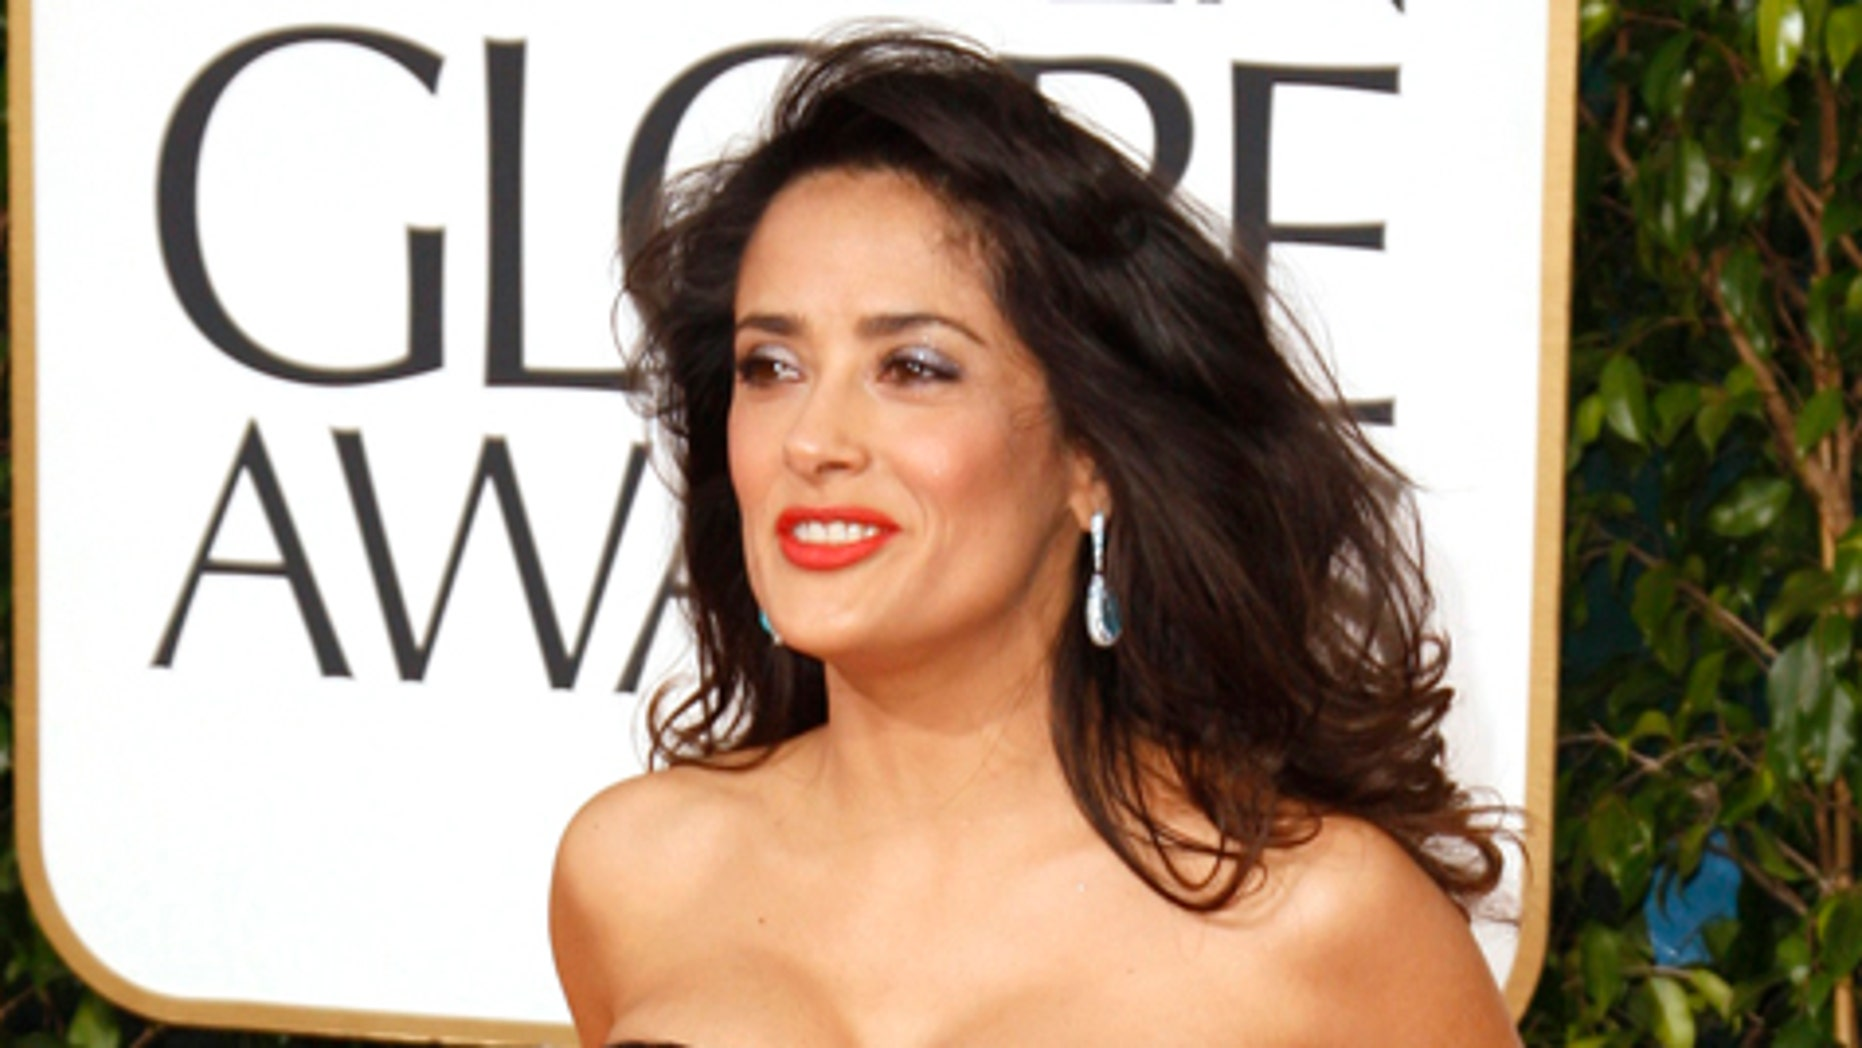 Actress Salma Hayek at the 70th annual Golden Globe Awards in Beverly Hills, California January 13, 2013.